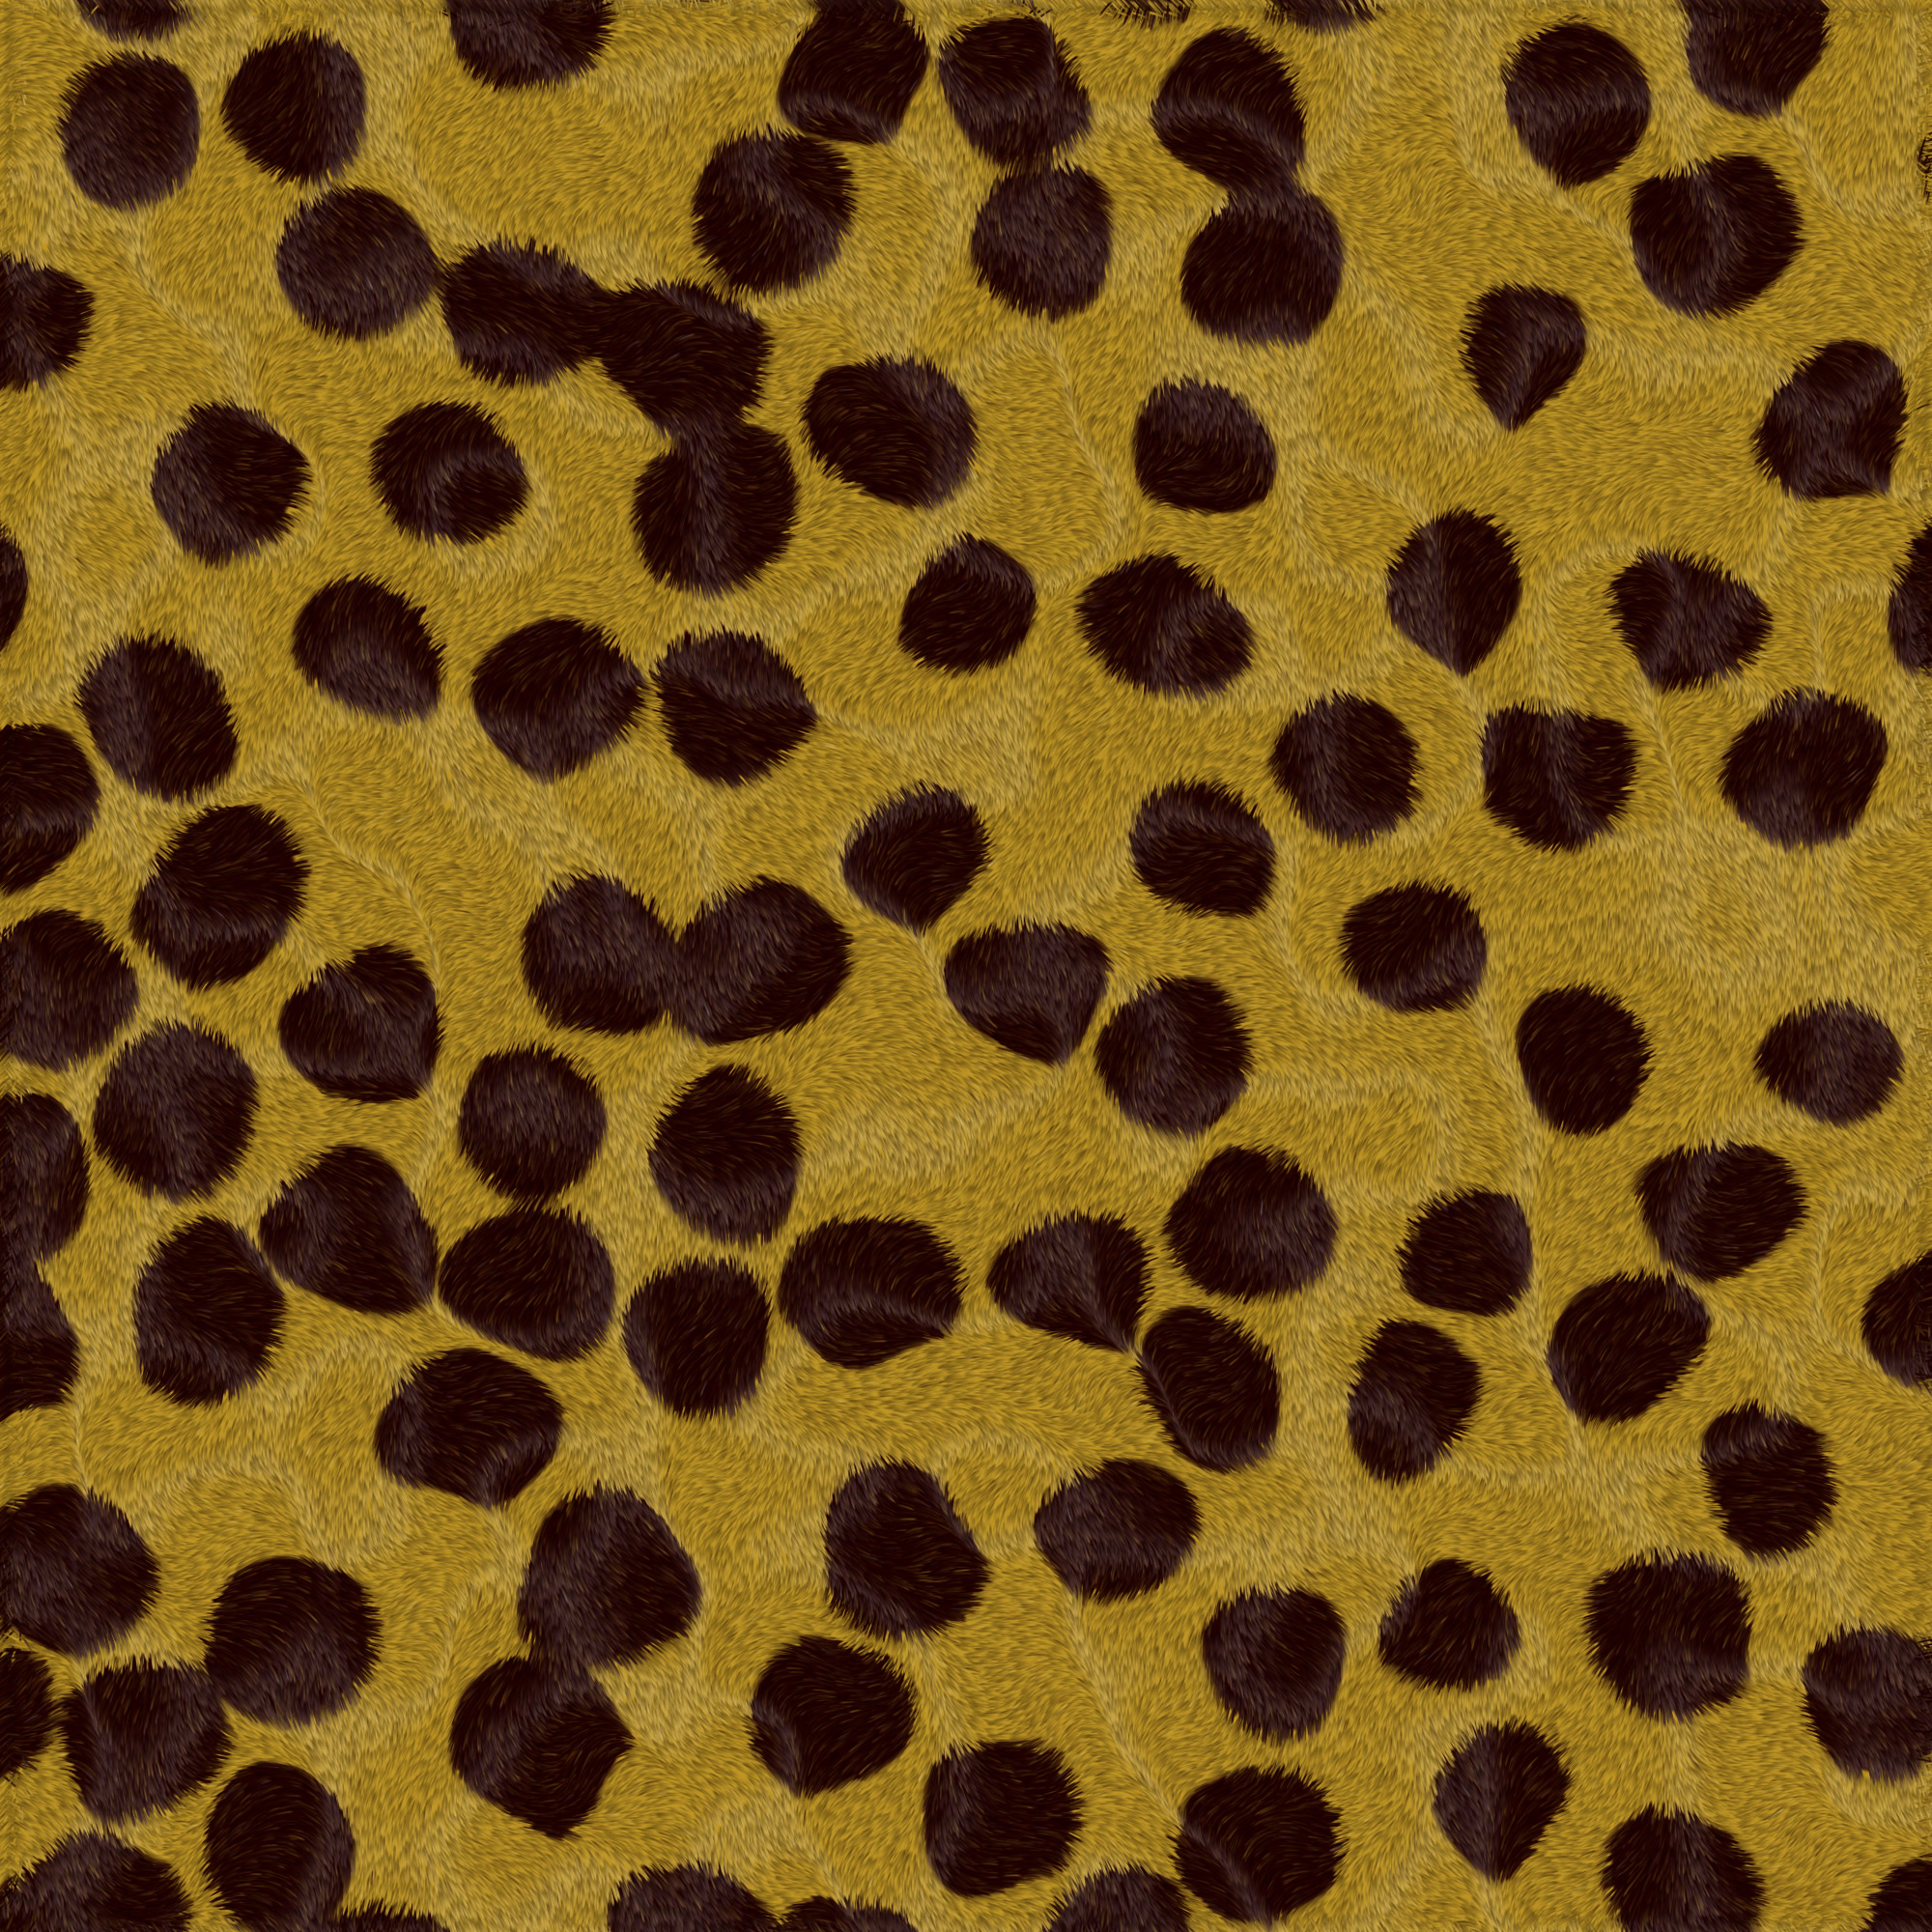 leopard, leopard, gepard animal texture, background, skin animal texture, background